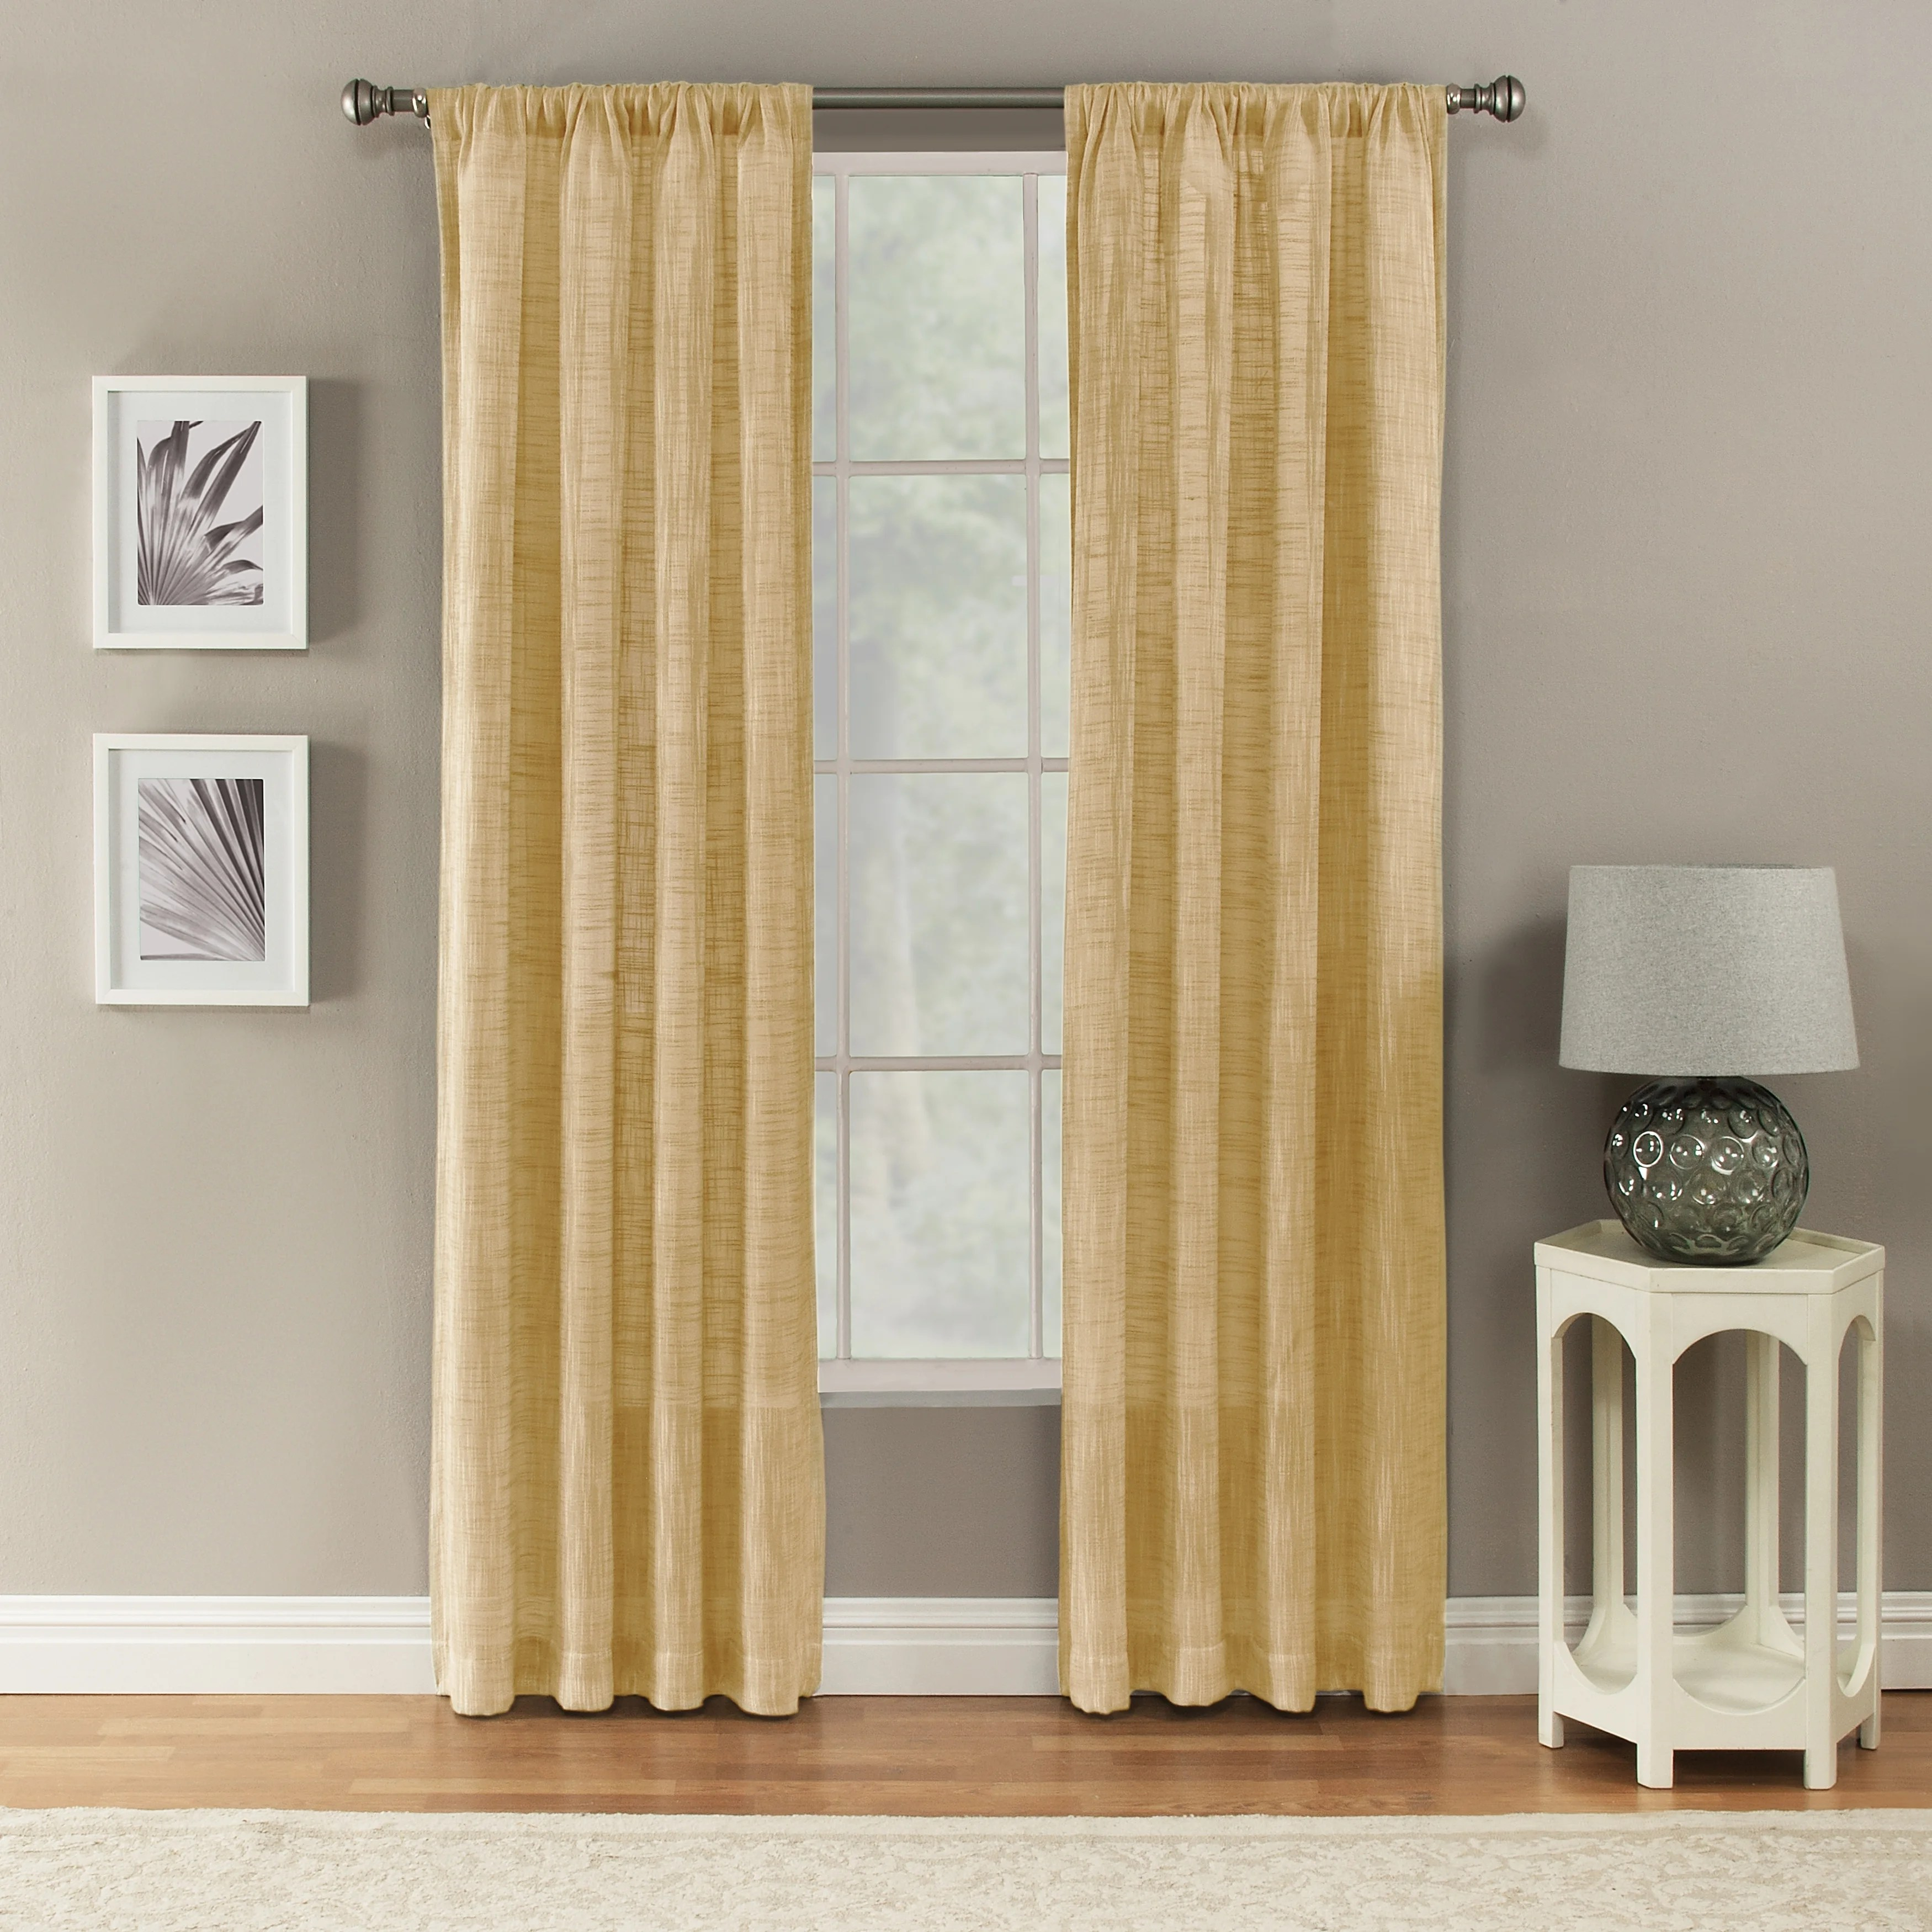 Buy Graphic Print Curtains & Drapes Online at Overstock ...